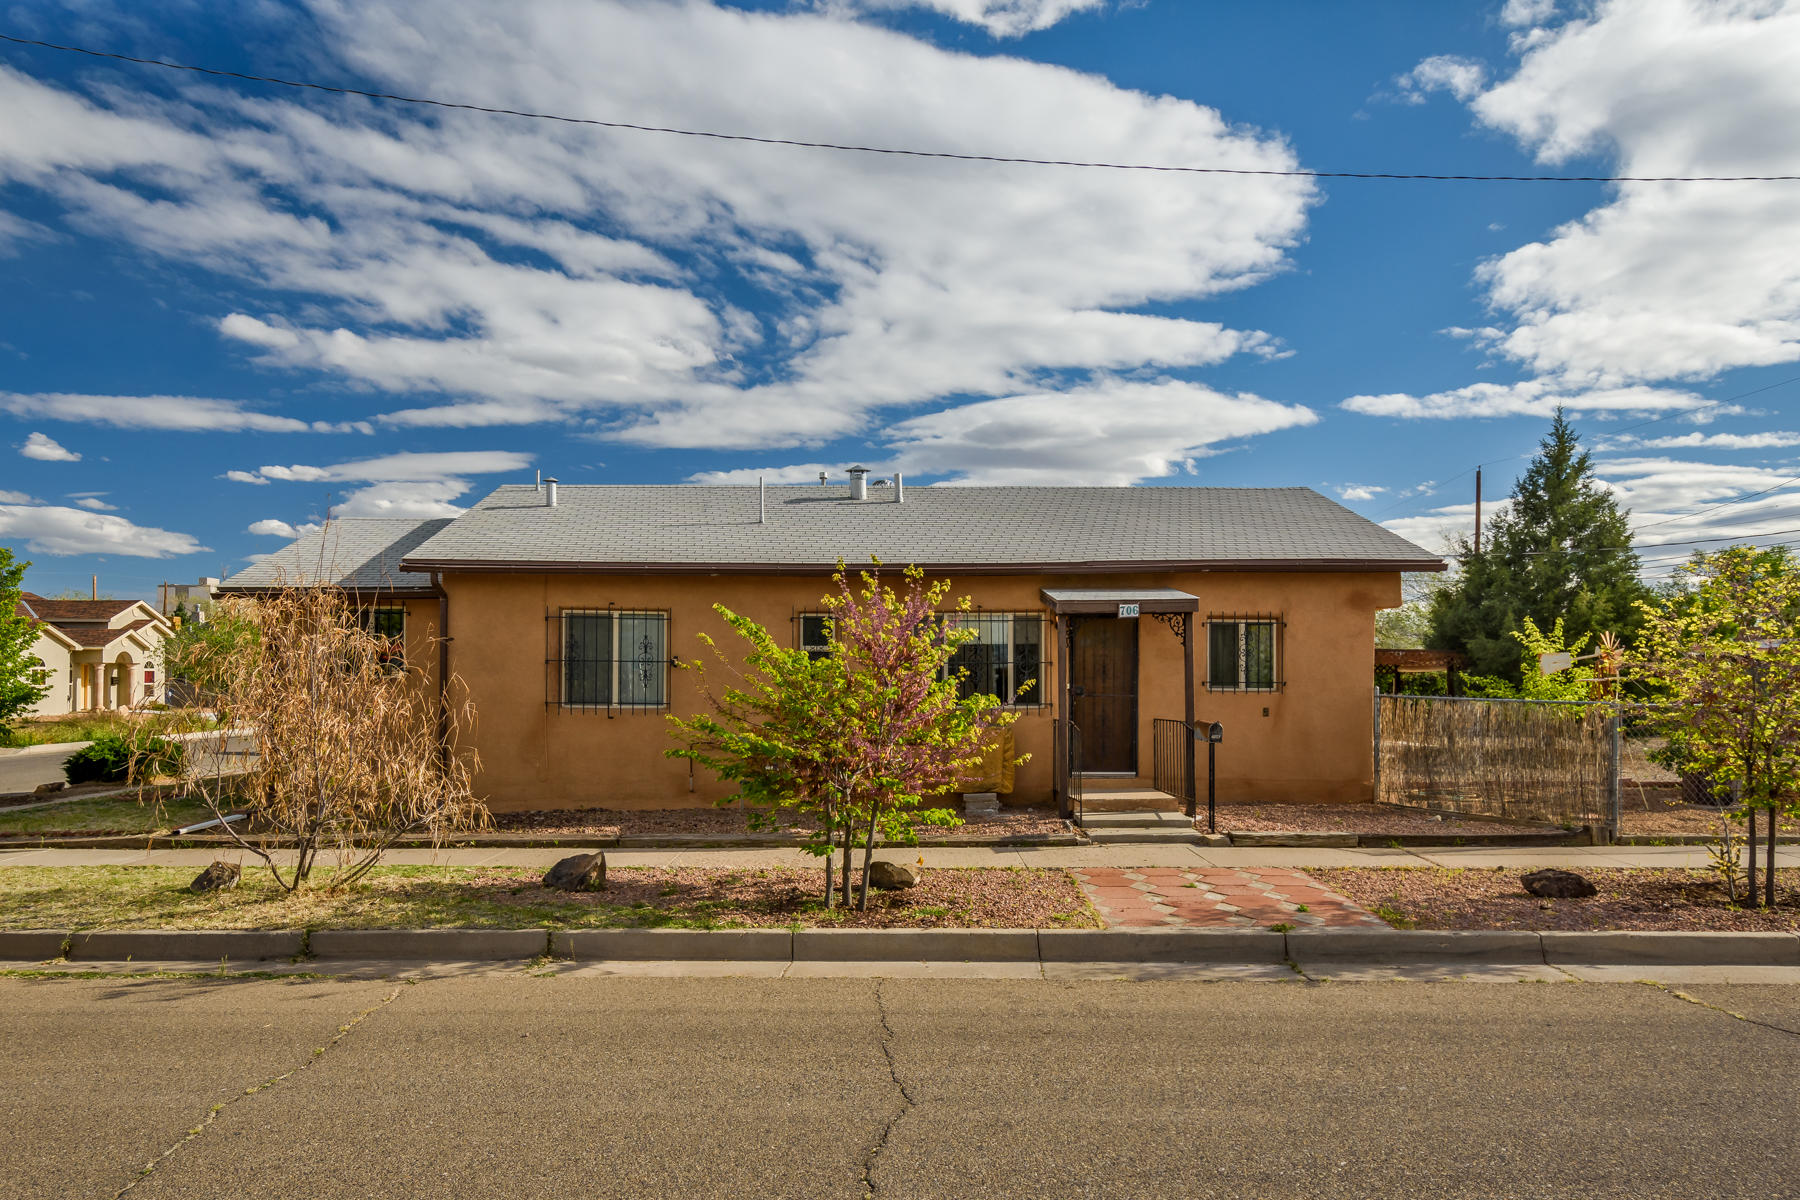 This is a beautiful 3-bedroom home located near the Downtown area of Albuquerque. Wood floors throughout! Adobe and block walls! Lots of storage space.Large corner lot. Plenty of room to park an RV or extra vehicles in back  yard.  Home can easily be converted BACK INTO a Duplex. (was a duplex at one point) New vinyl windows! Roof is only approx 14 years old. Home has a large crawlspace underneath! (great for storage/basement area) Property being Sold AS-IS, WHERE IS.